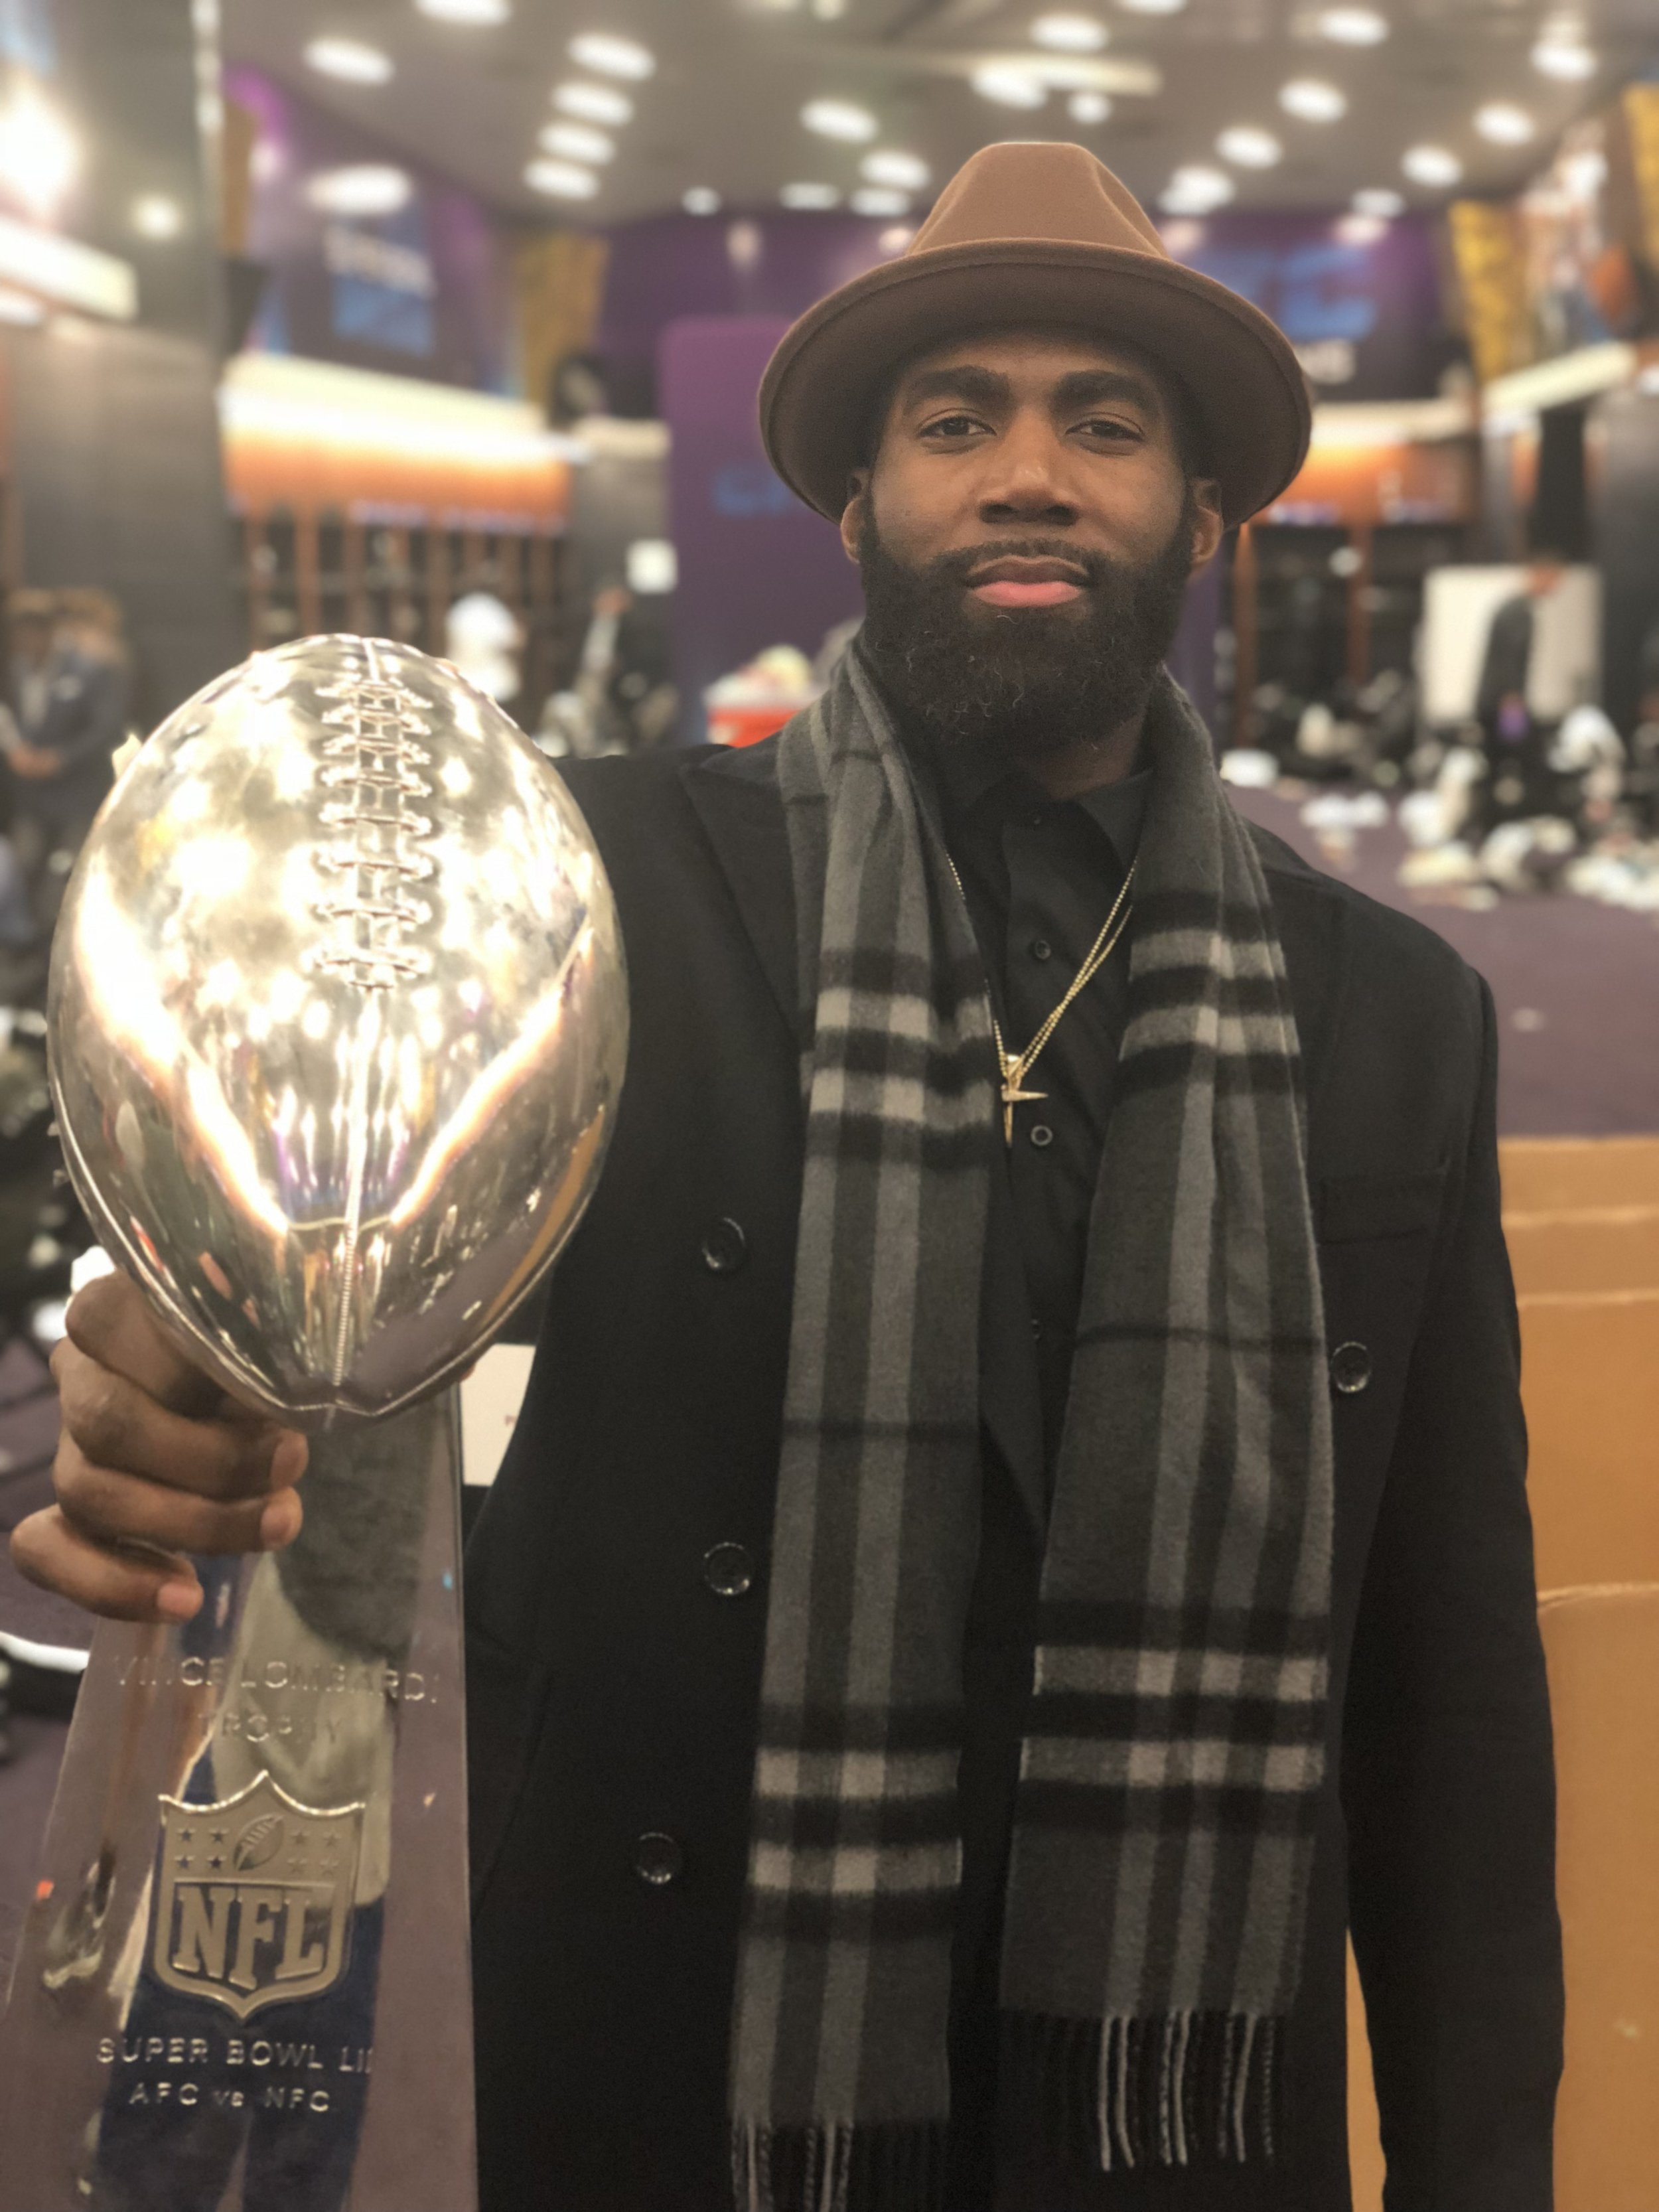 SUPERBOWL CHAMPION - The Eagles defeated the New England Patriots in Super Bowl LII 41-33 to give Jenkins his second Super Bowl championship and first Super Bowl championship with the Eagles. Jenkins recorded 4 tackles and 1 pass defended.